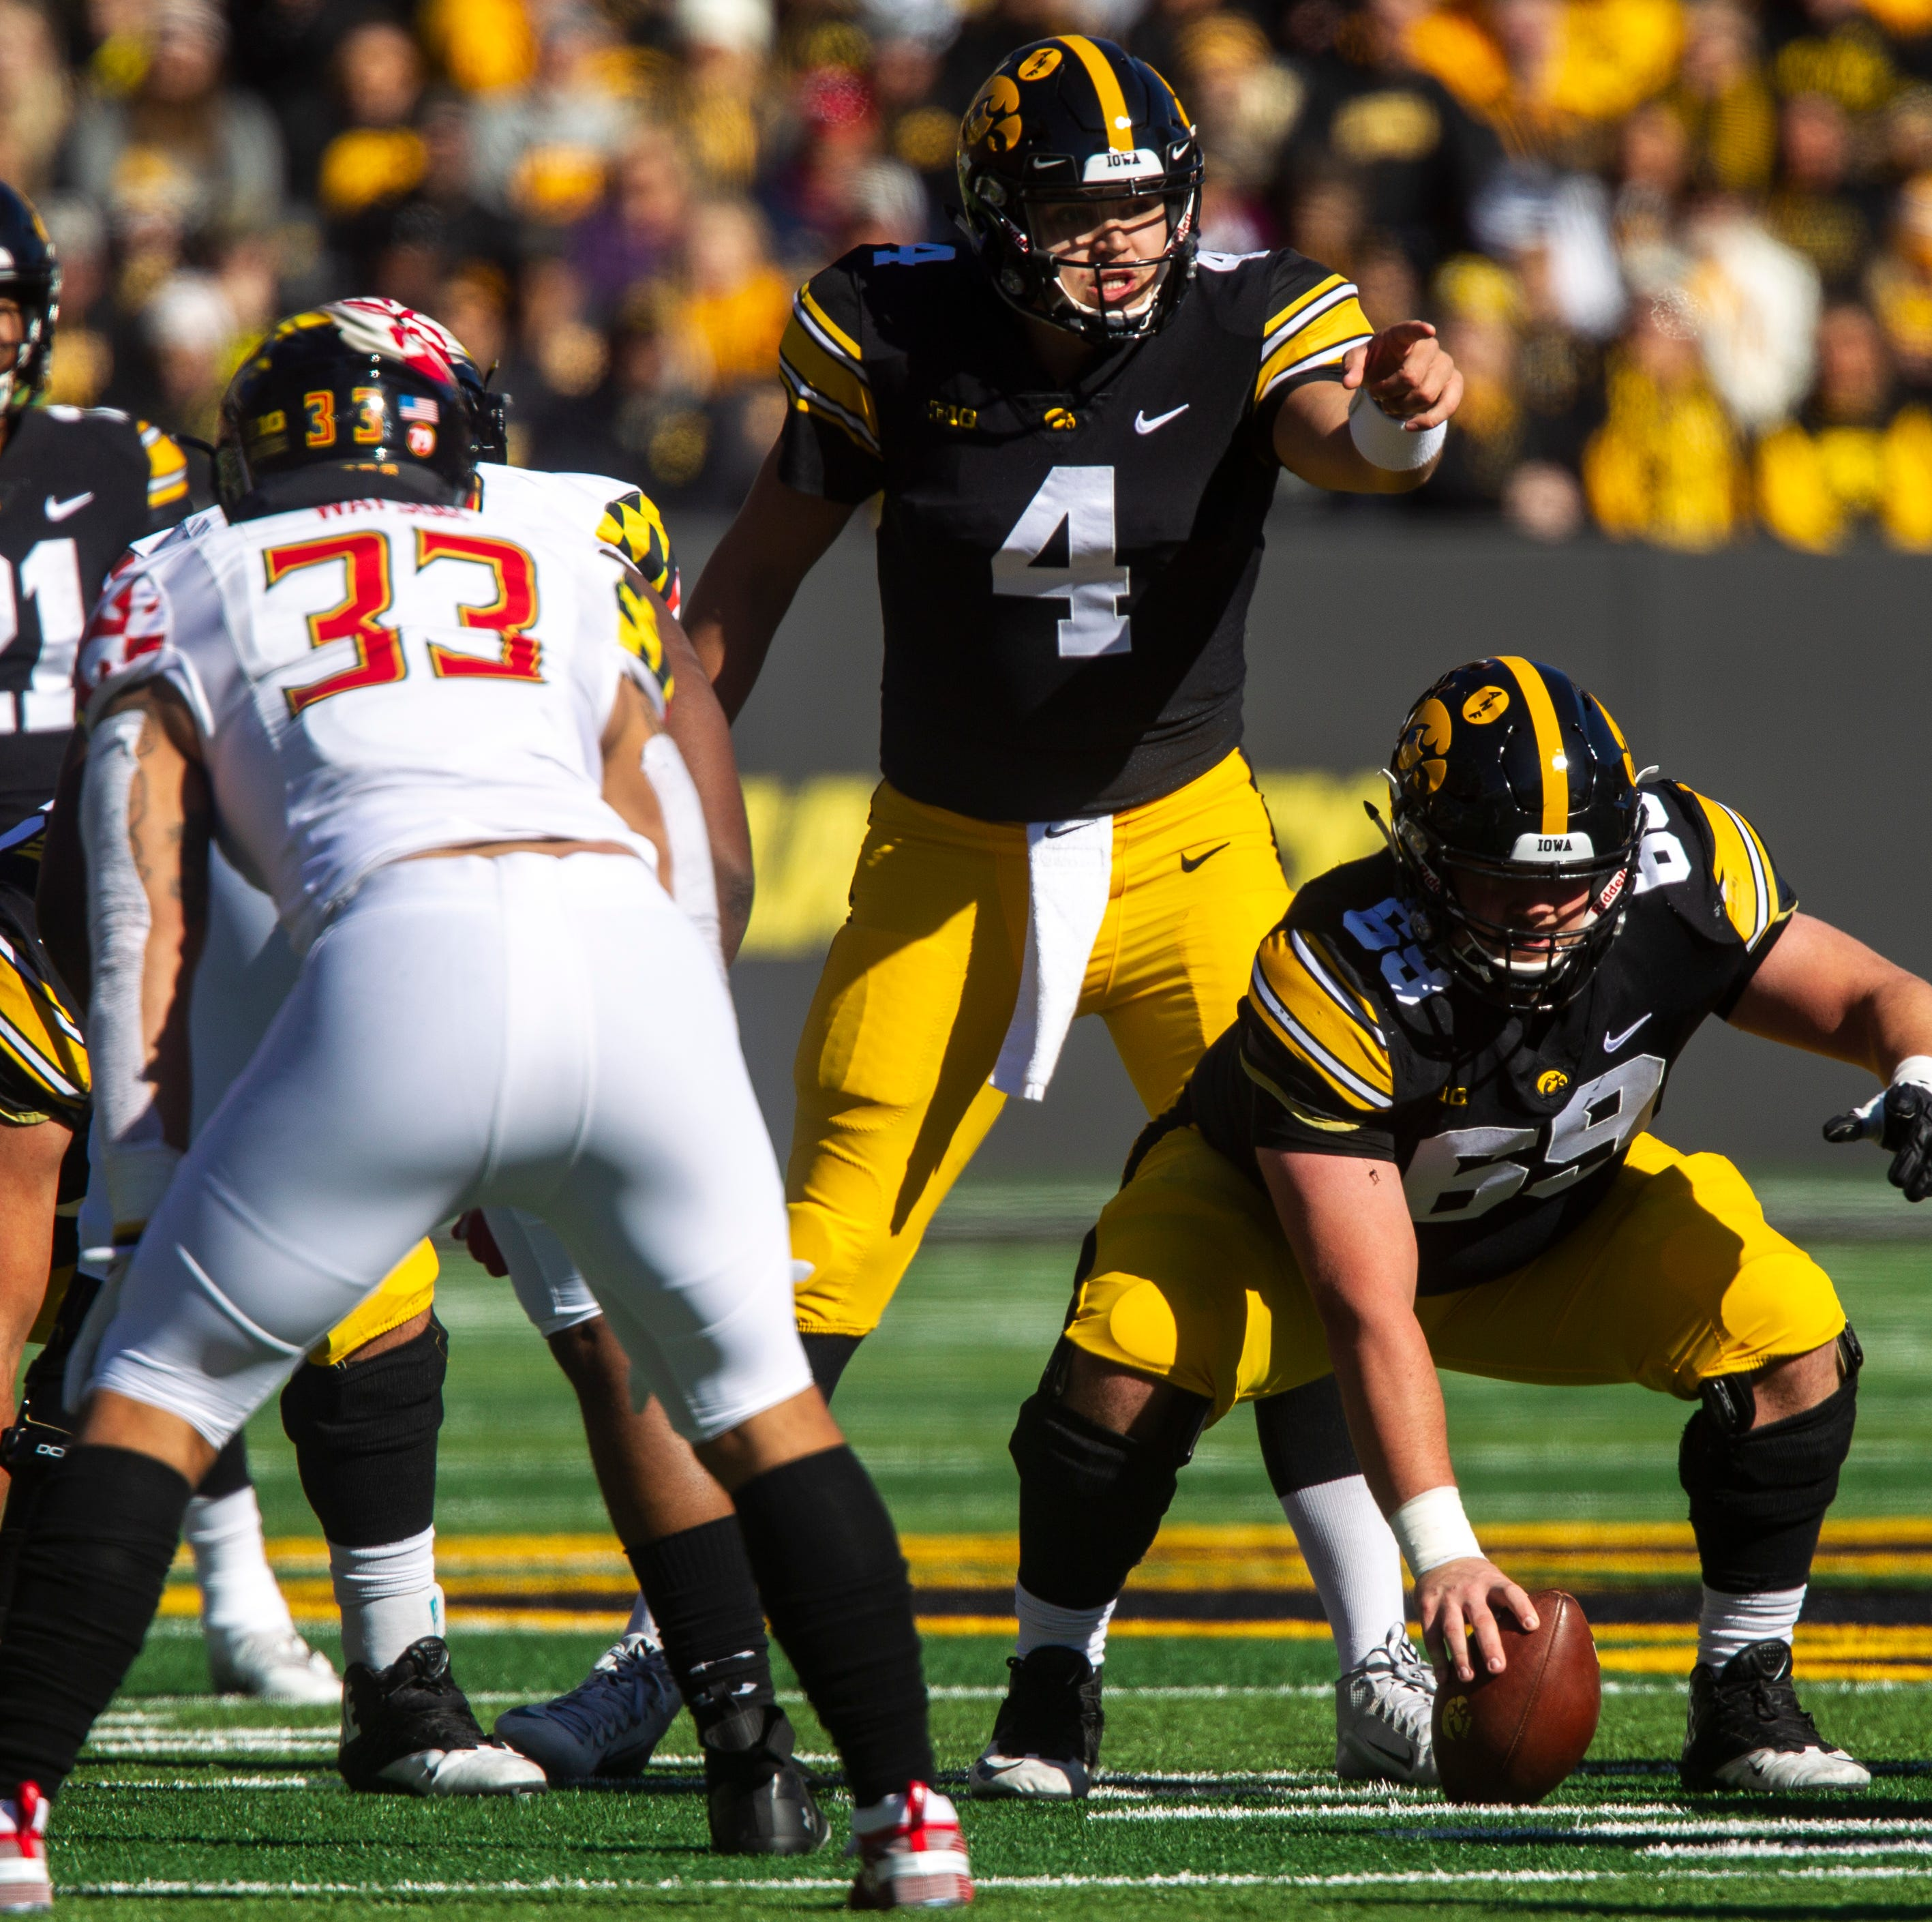 For Hawkeyes Render and Fant, matchup with Cornhuskers is personal